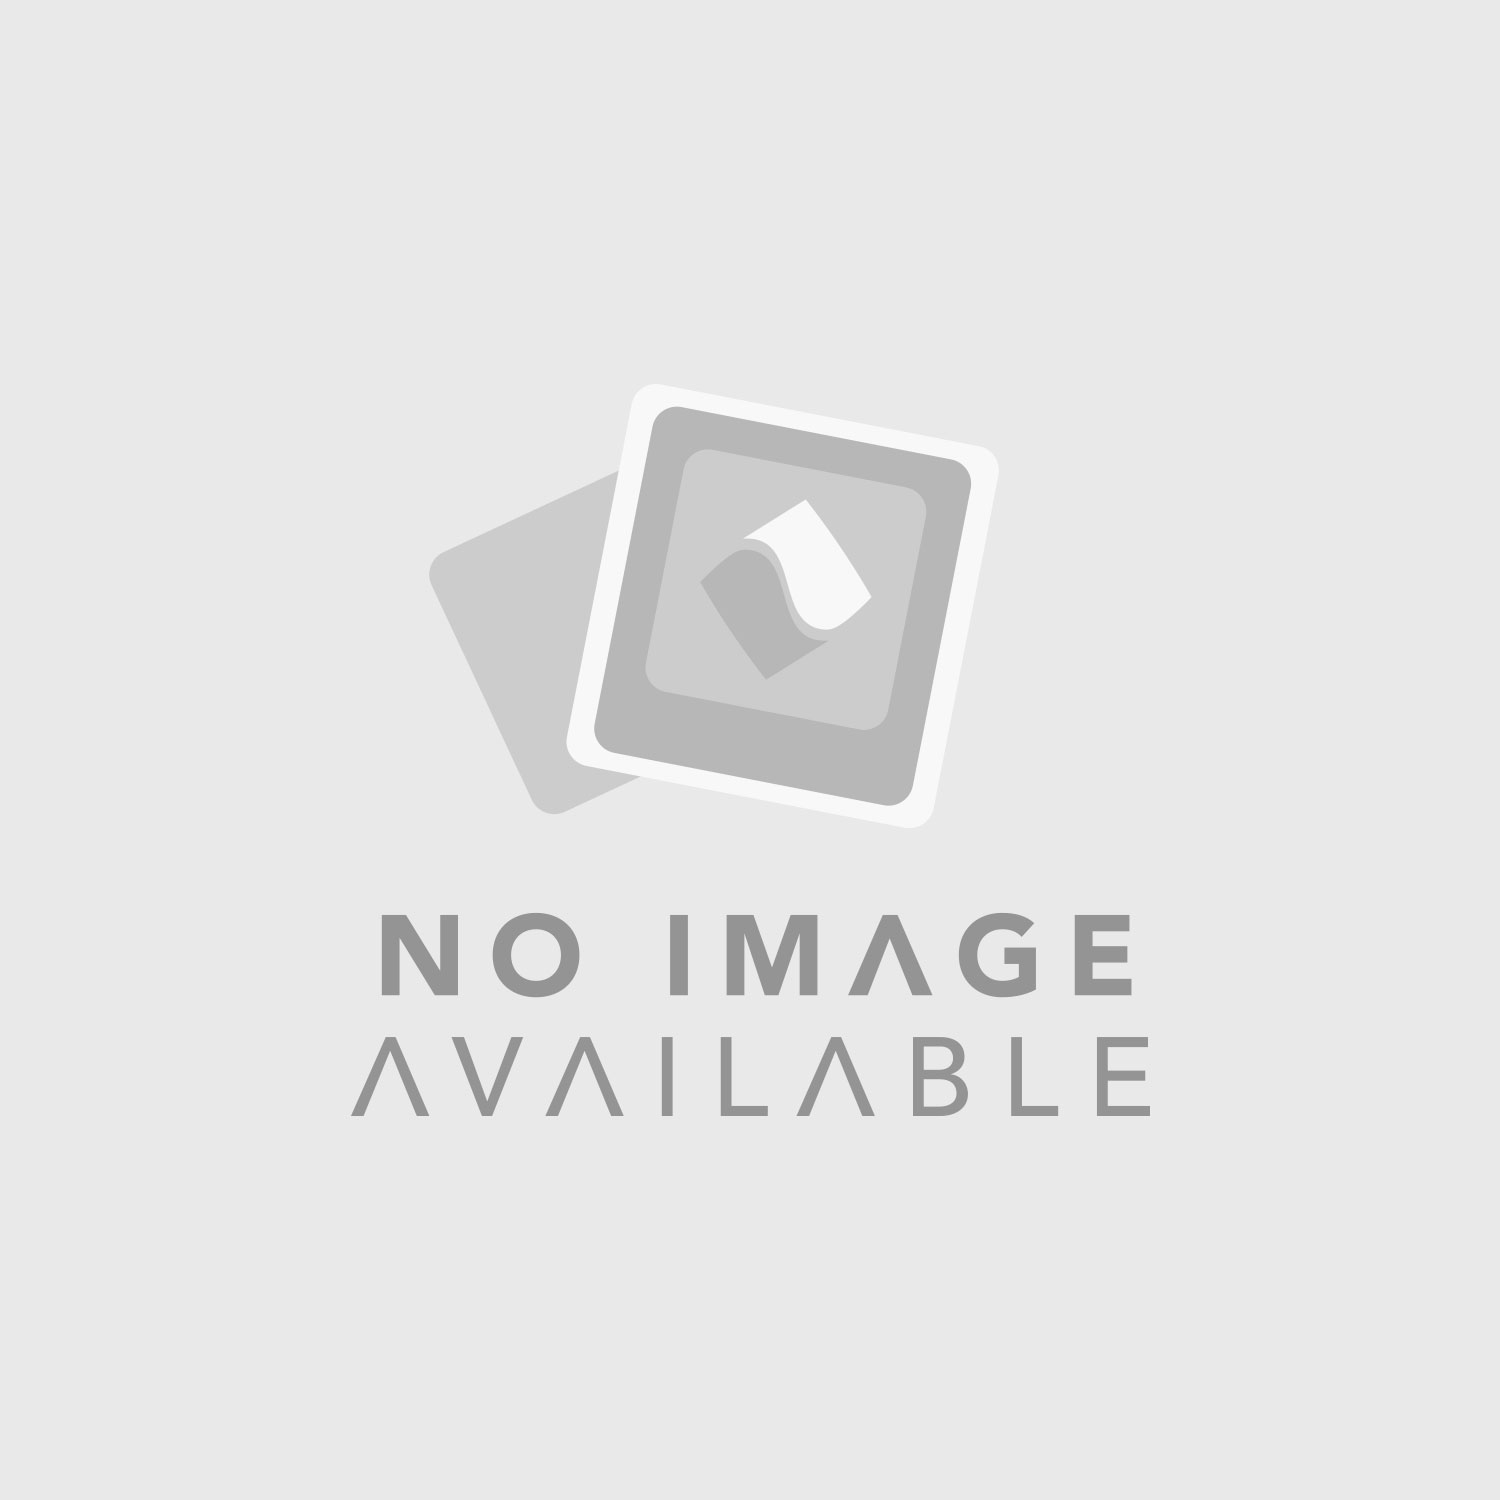 Soundcraft GB2 32 Channel Live Sound/Recording Console with 2 Stereo Channels & 2 Stereo Group Outs